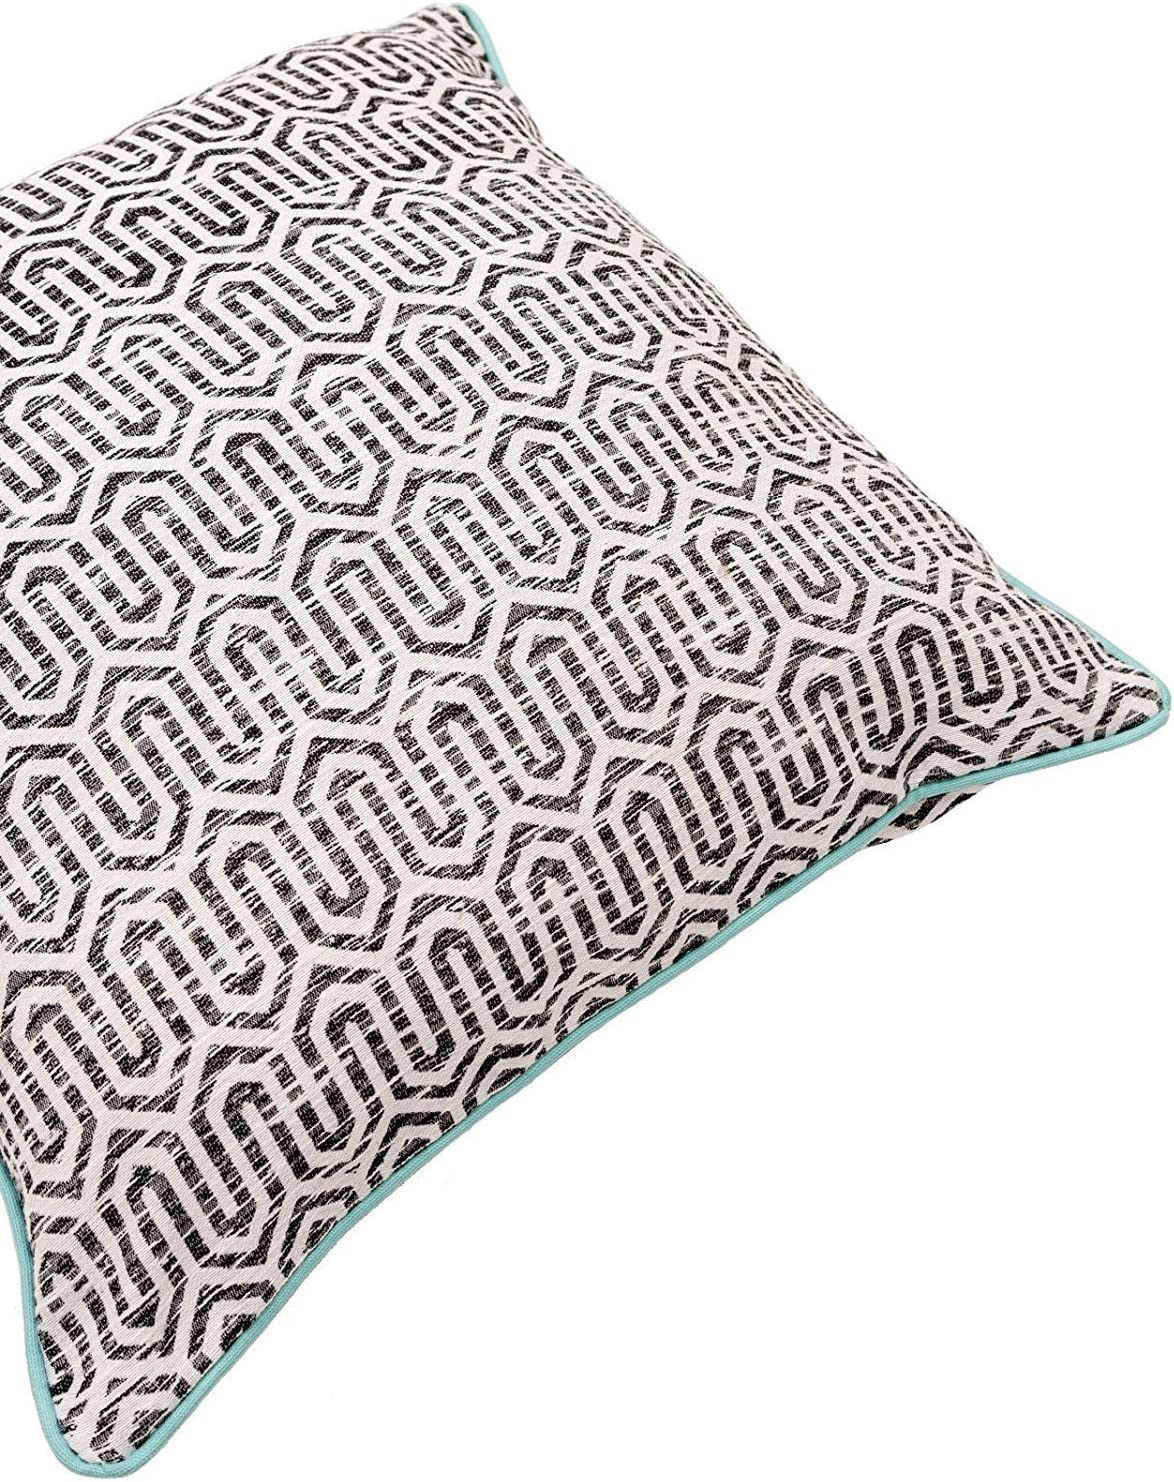 SUNBA YOUTH Adults Weighted Blanket 15lbs Weighted Blanket /& Removable Cover 18lbs 60x80 Weighted Blanket Grey fit Queen Size Bed Adults Heavy Bed Blanket Premium Cotton with Glass Beads